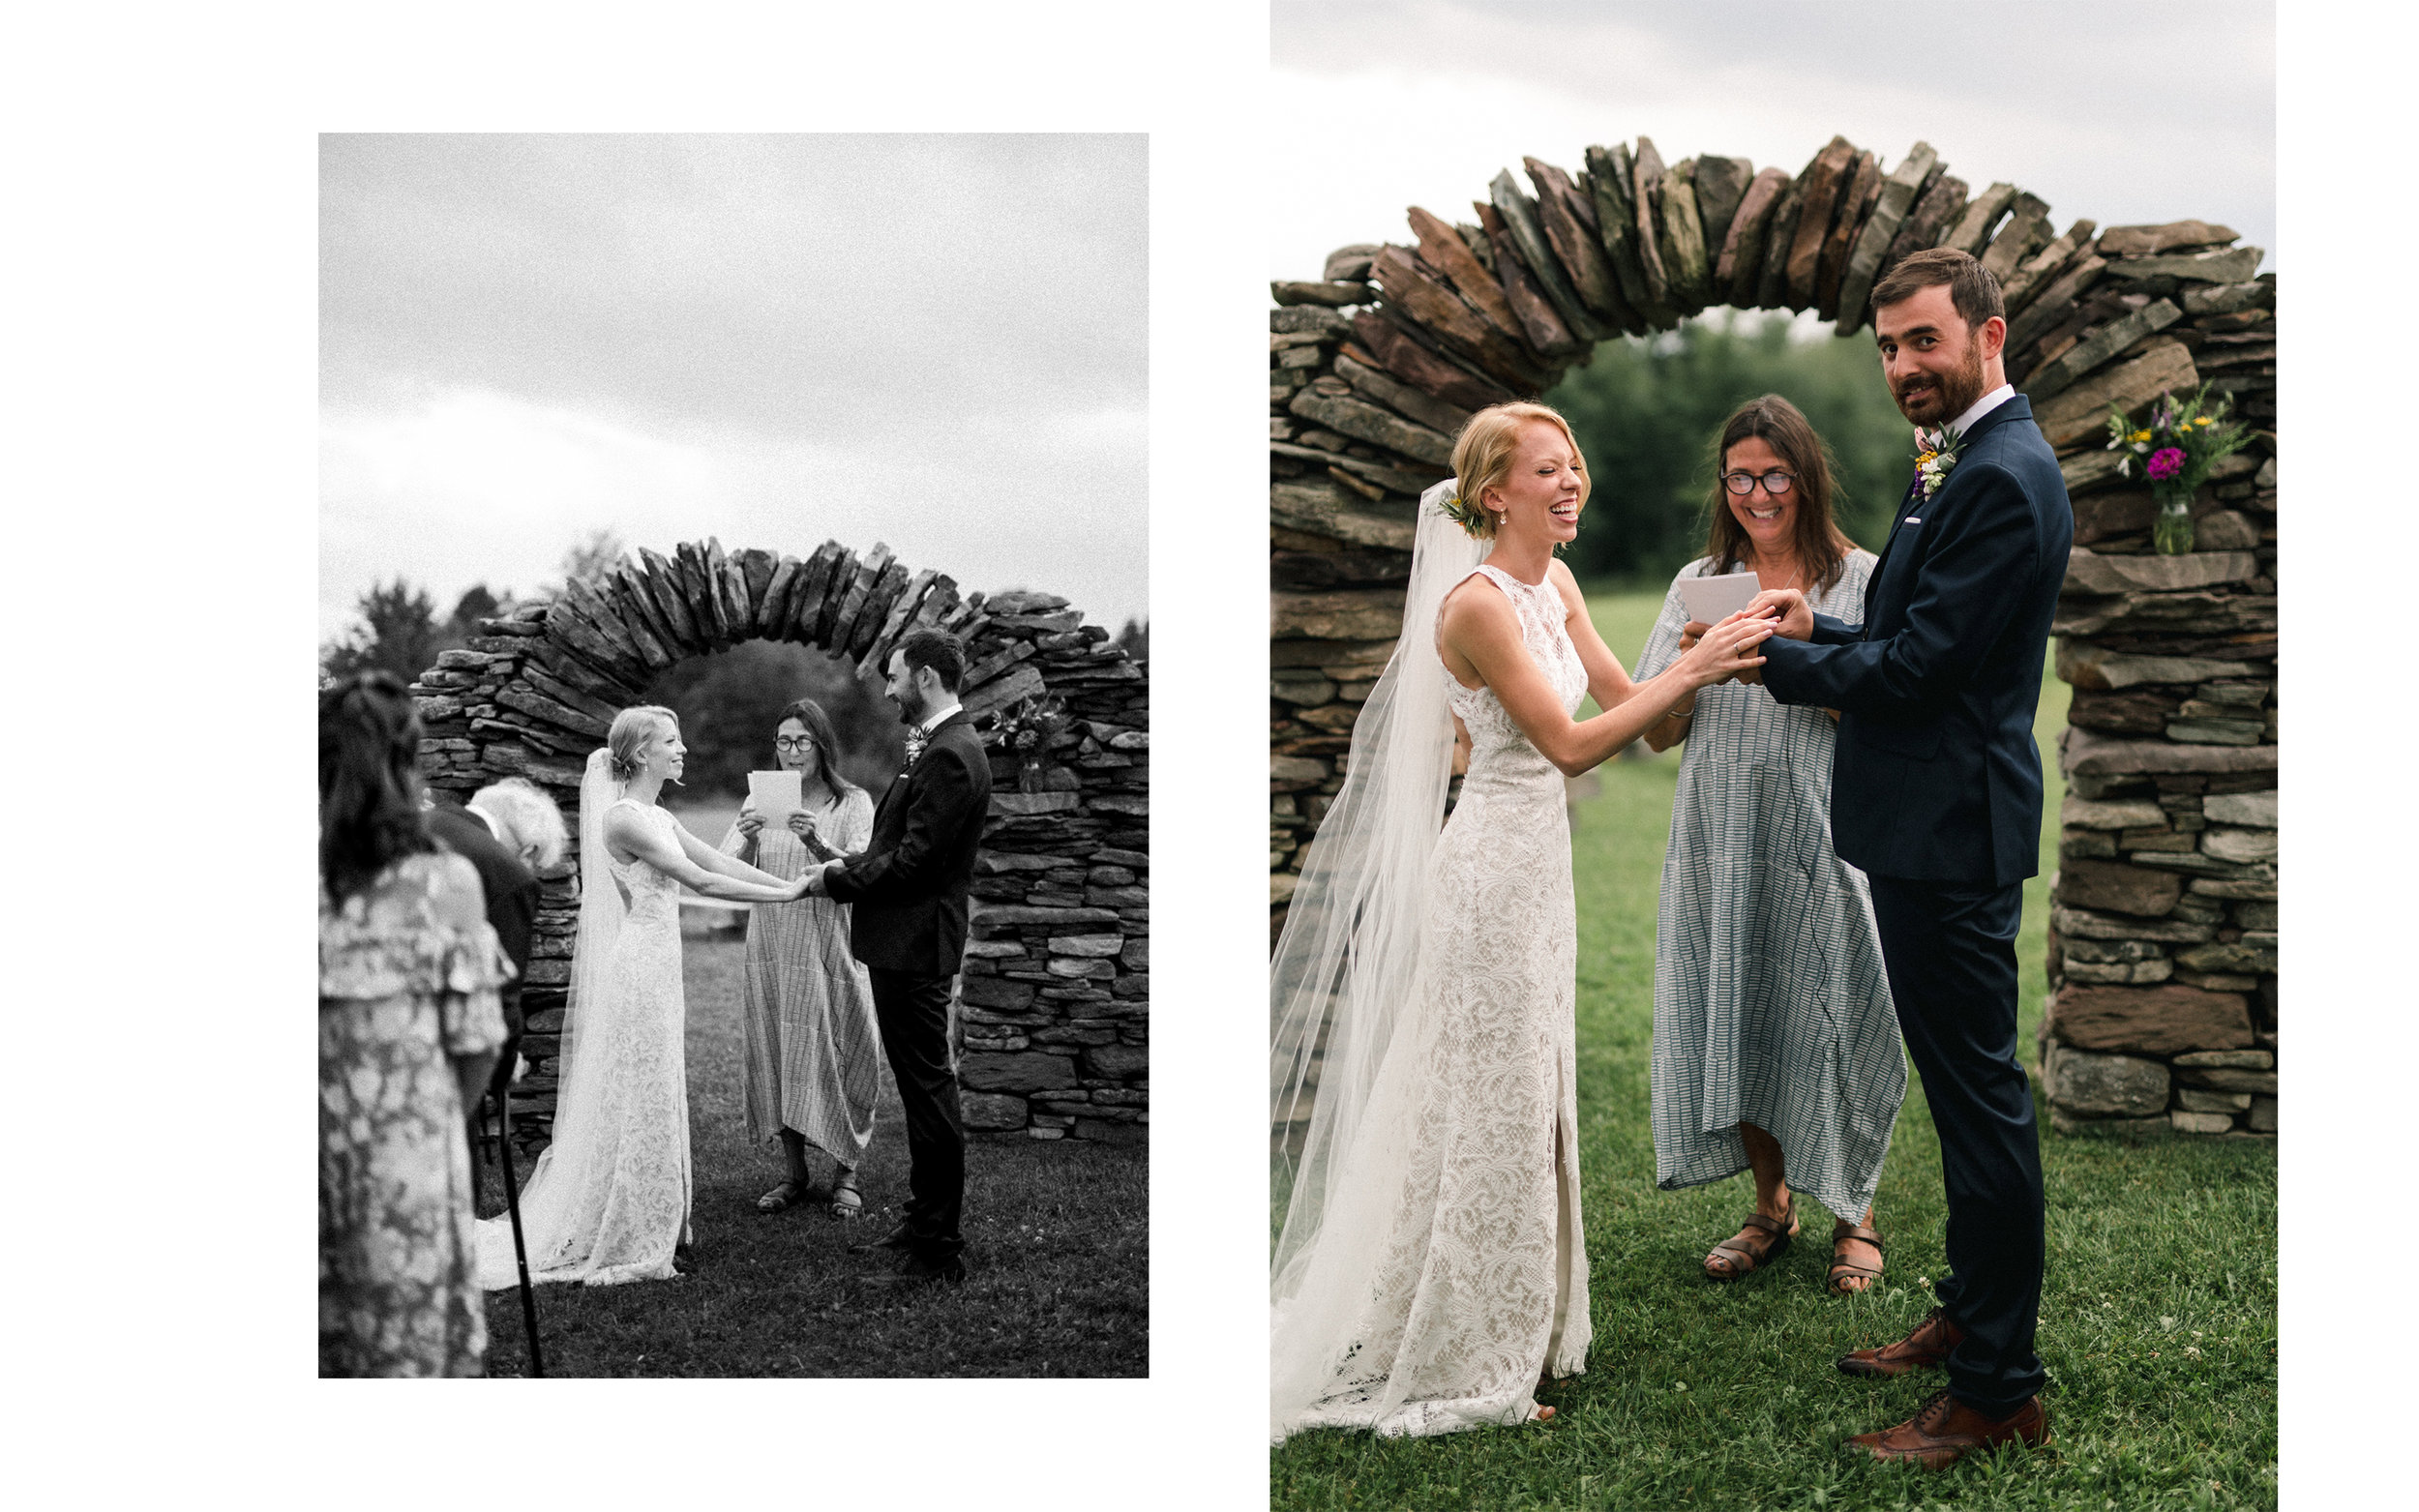 Stowe VT Farm Wedding Fine Art Wedding Photographer_Meg Haley Photographs_006.jpg